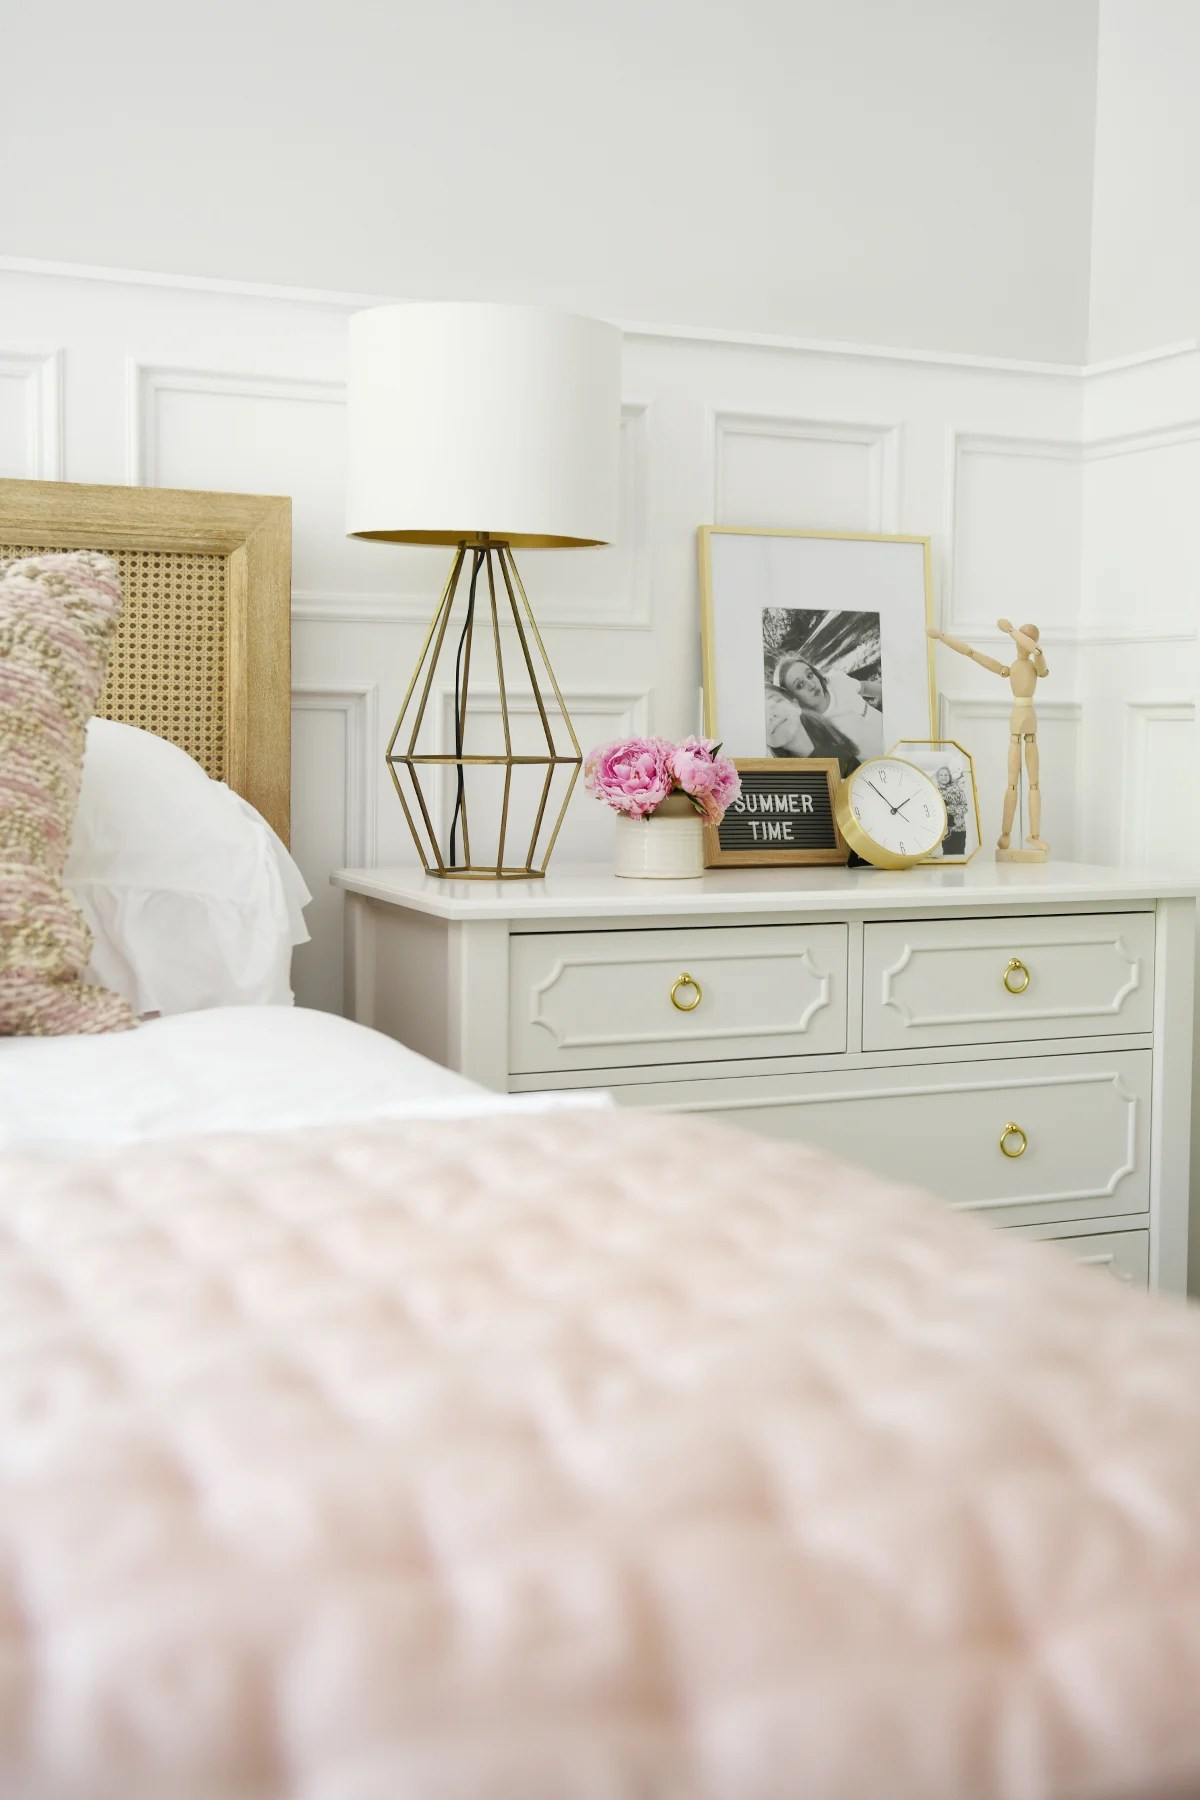 Cute Room Ideas for a Teenage Girl: Teen Bedroom Before ... on Decorations For Girls Room  id=84239